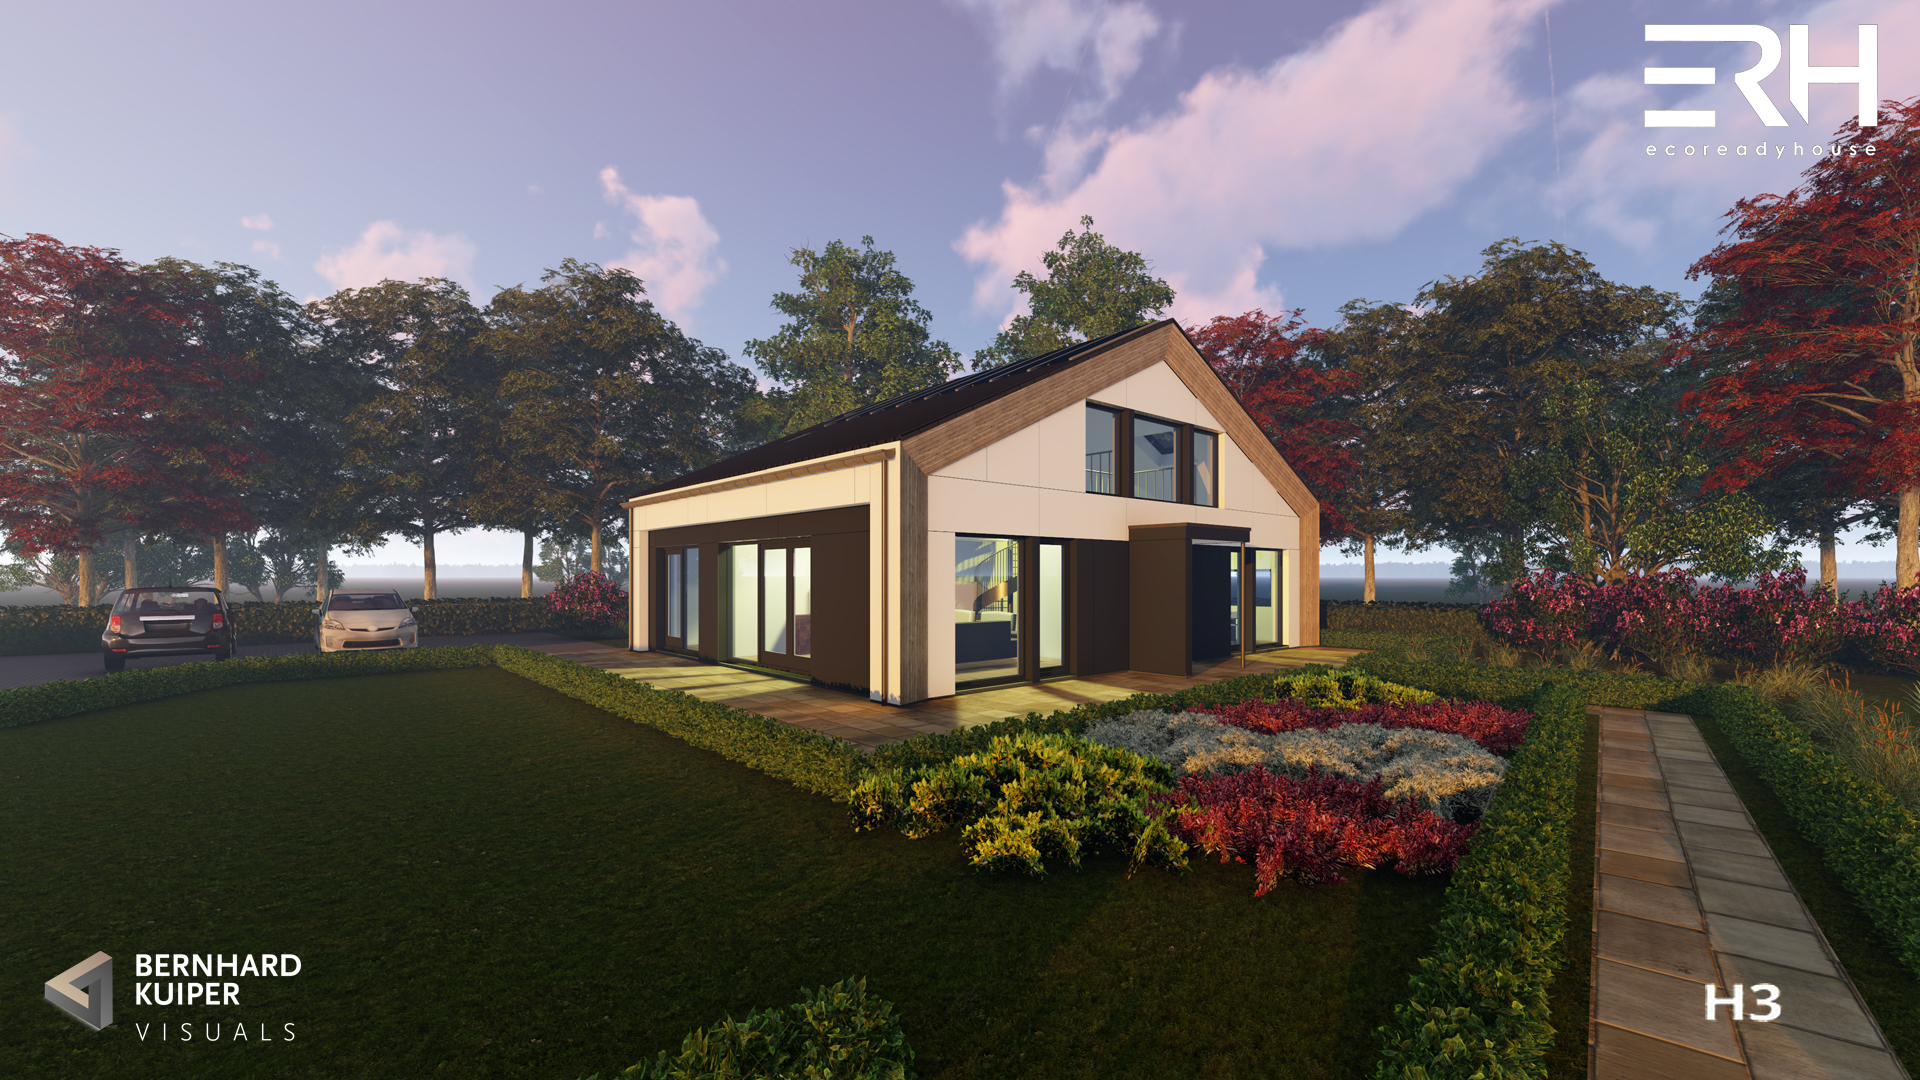 Ecoreadyhouse-H3_Oosterwold-04